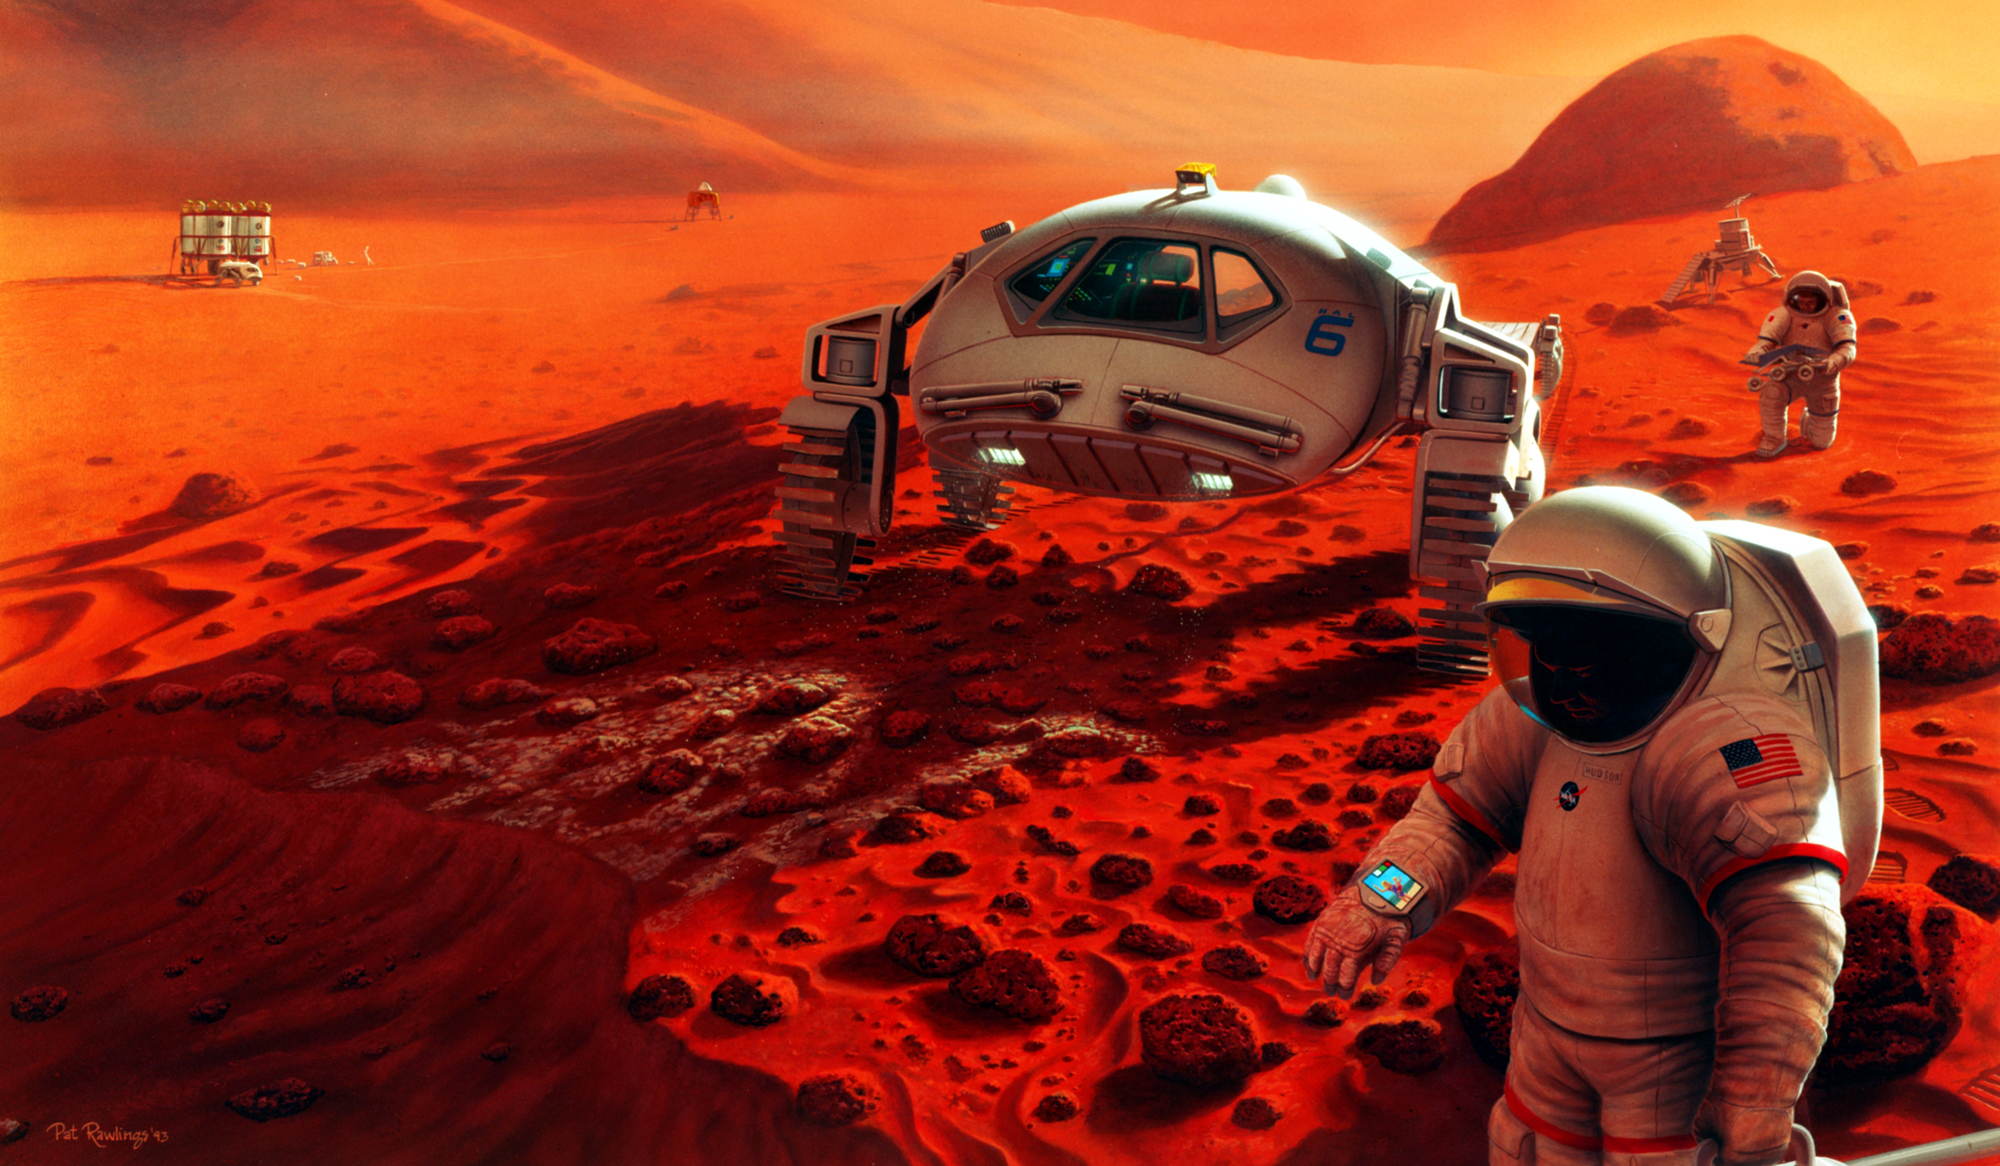 Mars Missions Could Make Humanity a Multi-Planet Species, NASA Chief Says